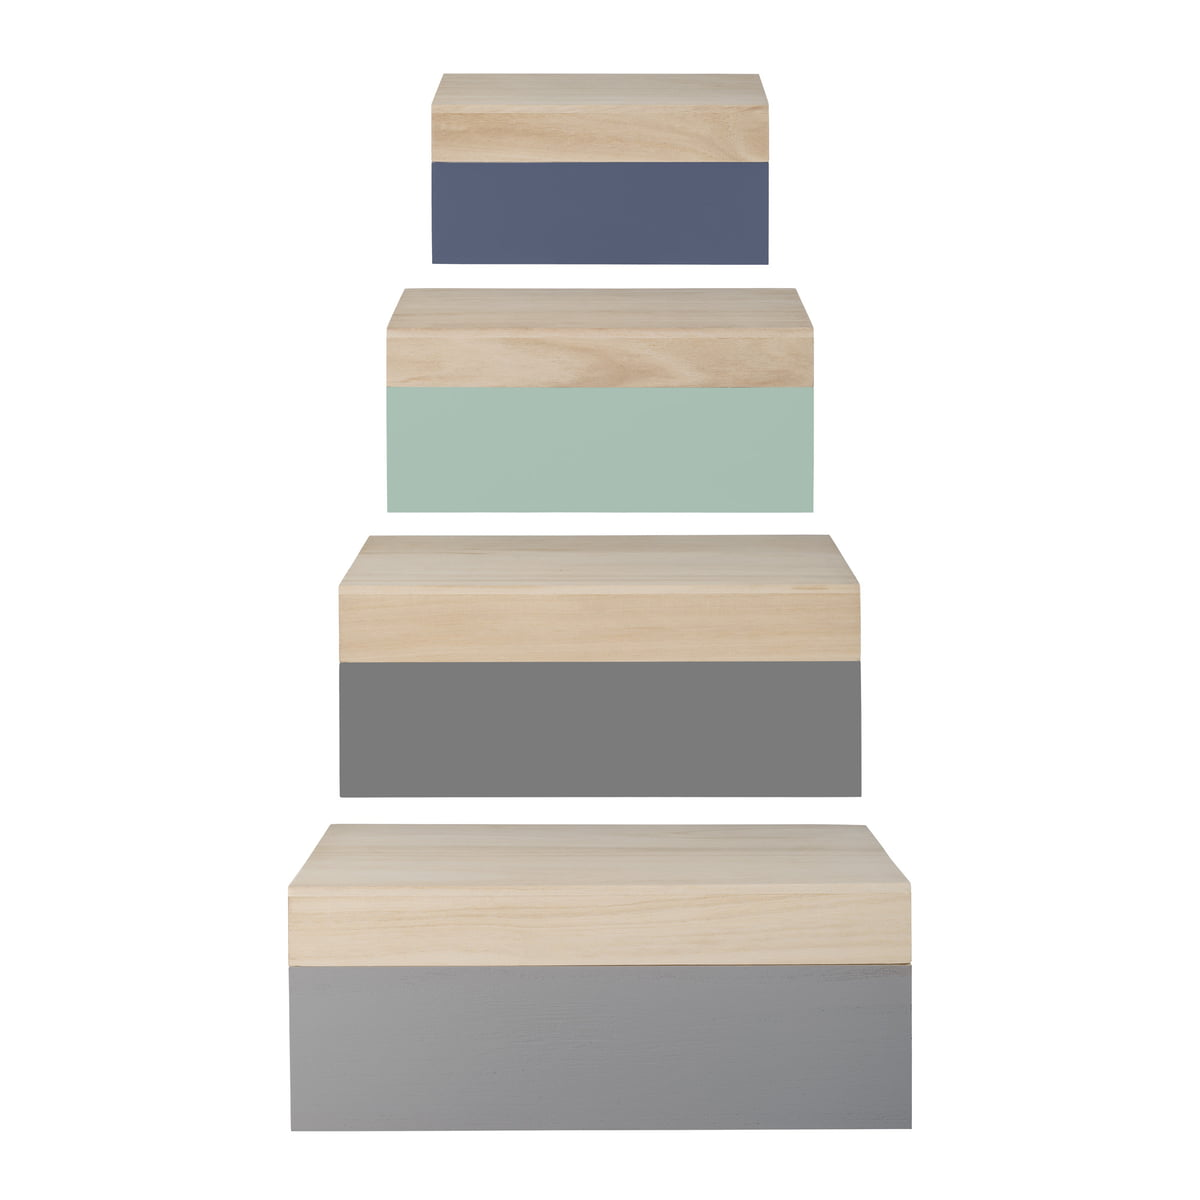 Bloomingville - Wooden Storage Boxes (set of 4) natural / pastel  sc 1 st  Connox & 4 Wooden Boxes by Bloomingville | Shop